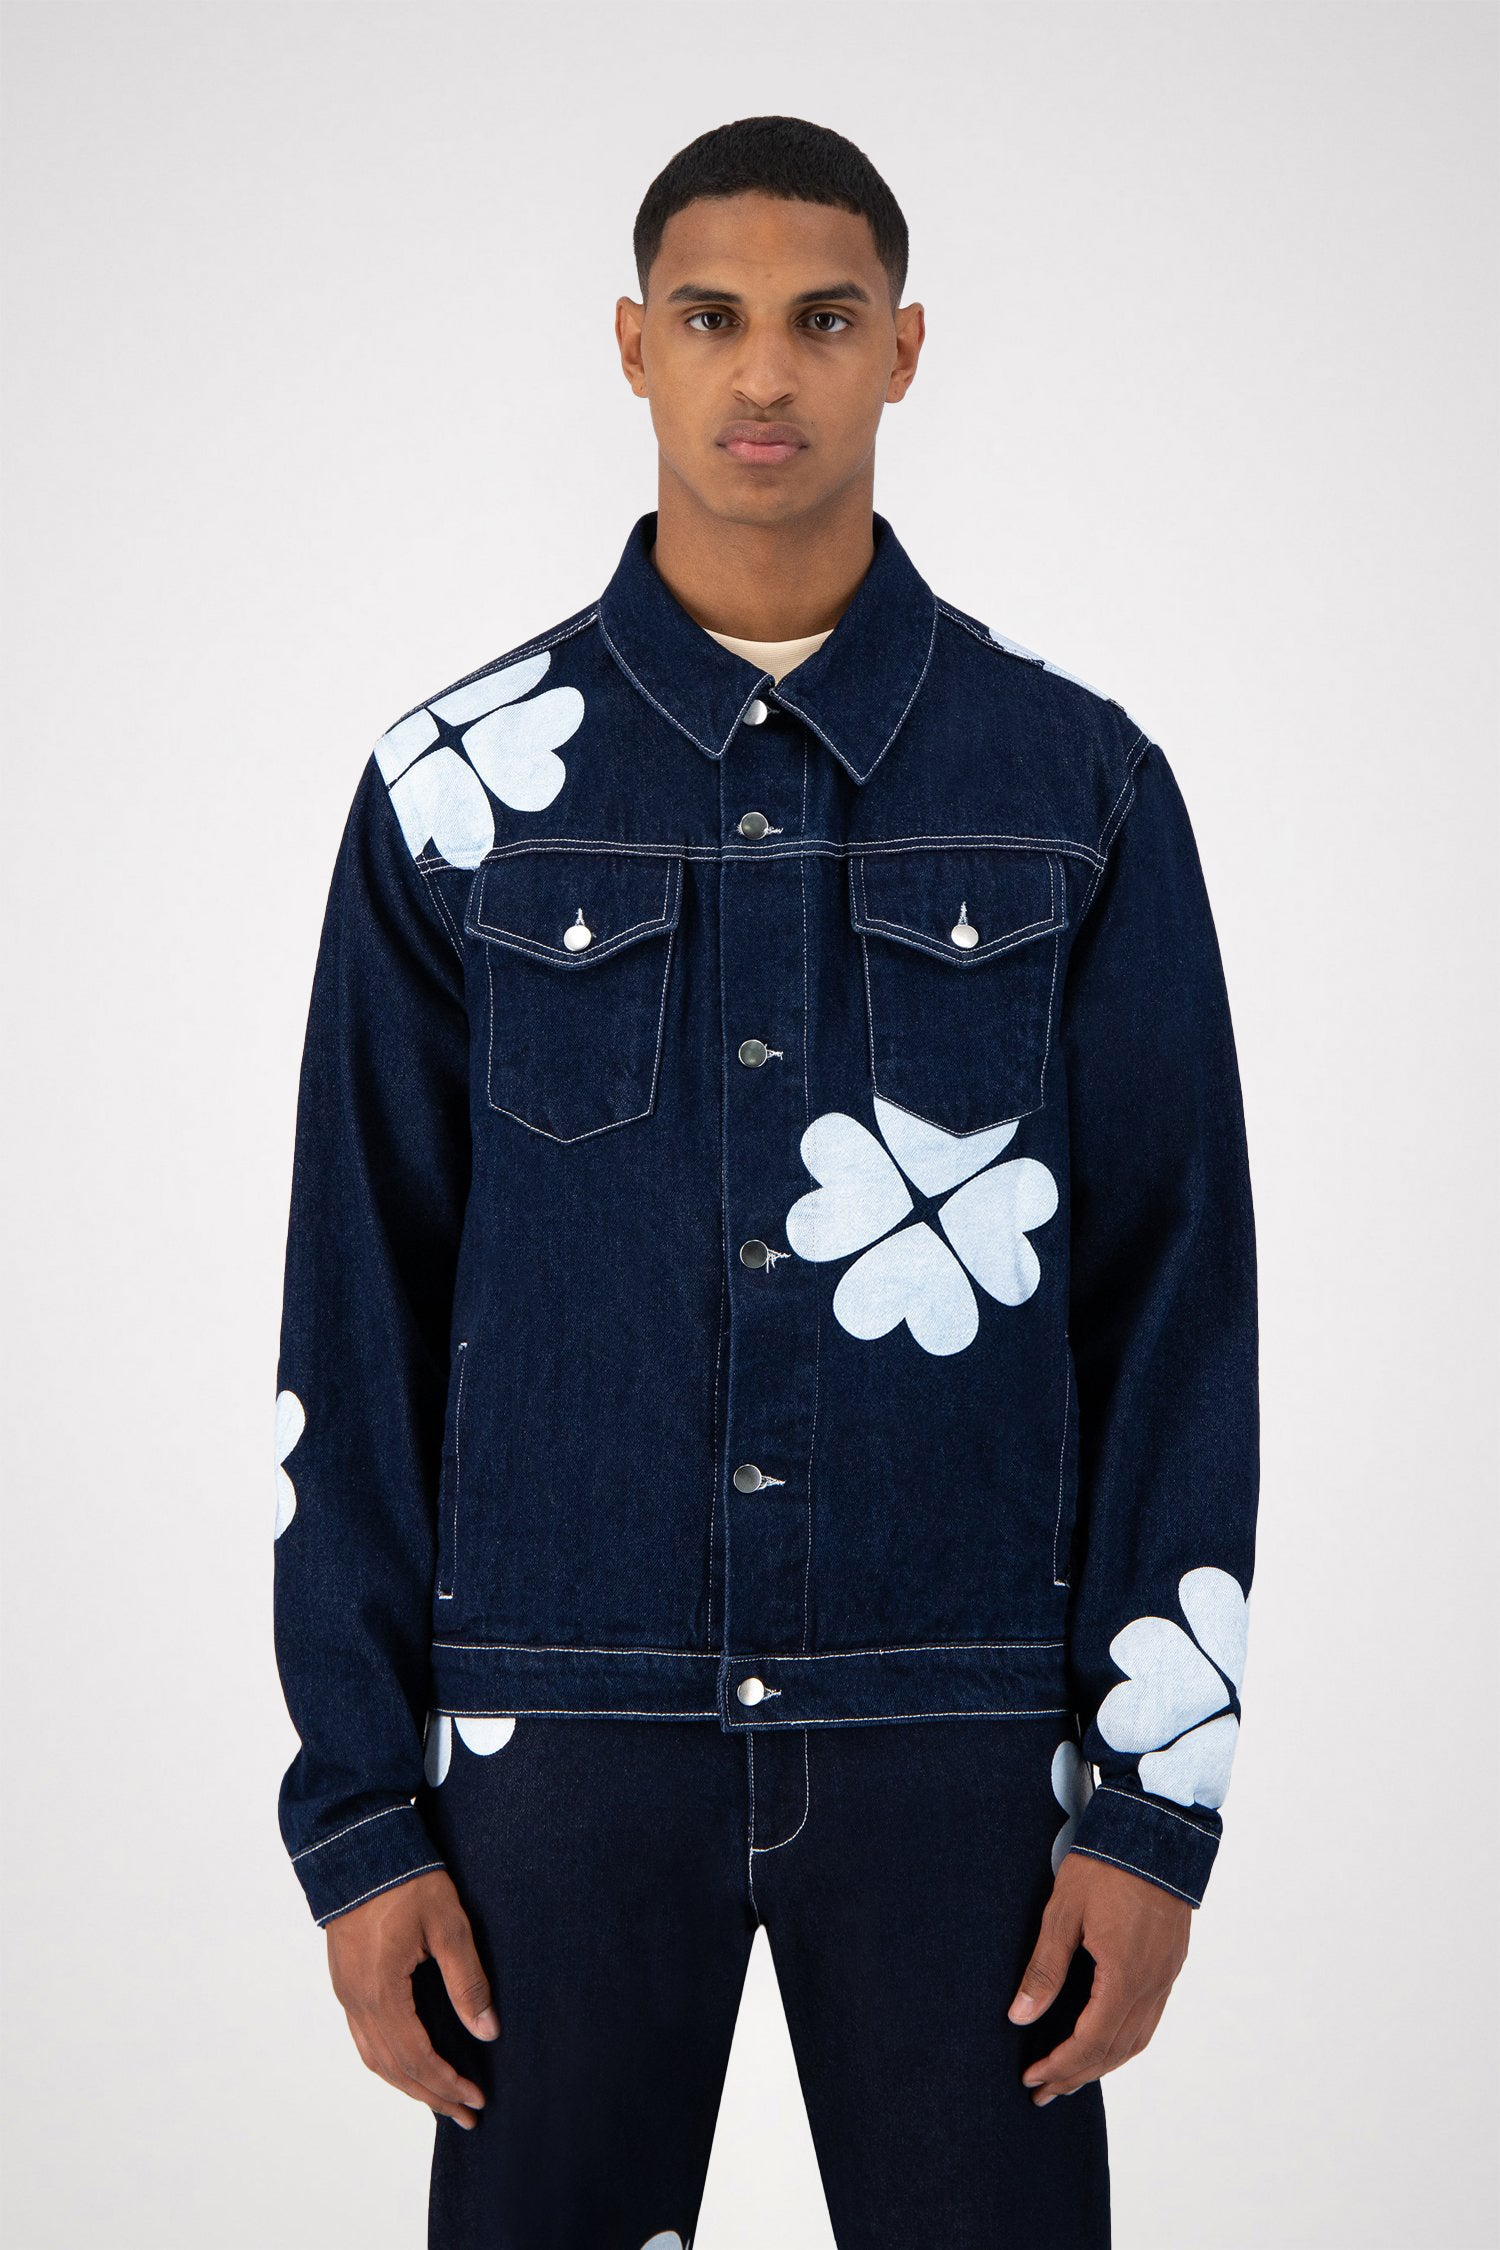 Josh Denim Trevo Jacket - Blue